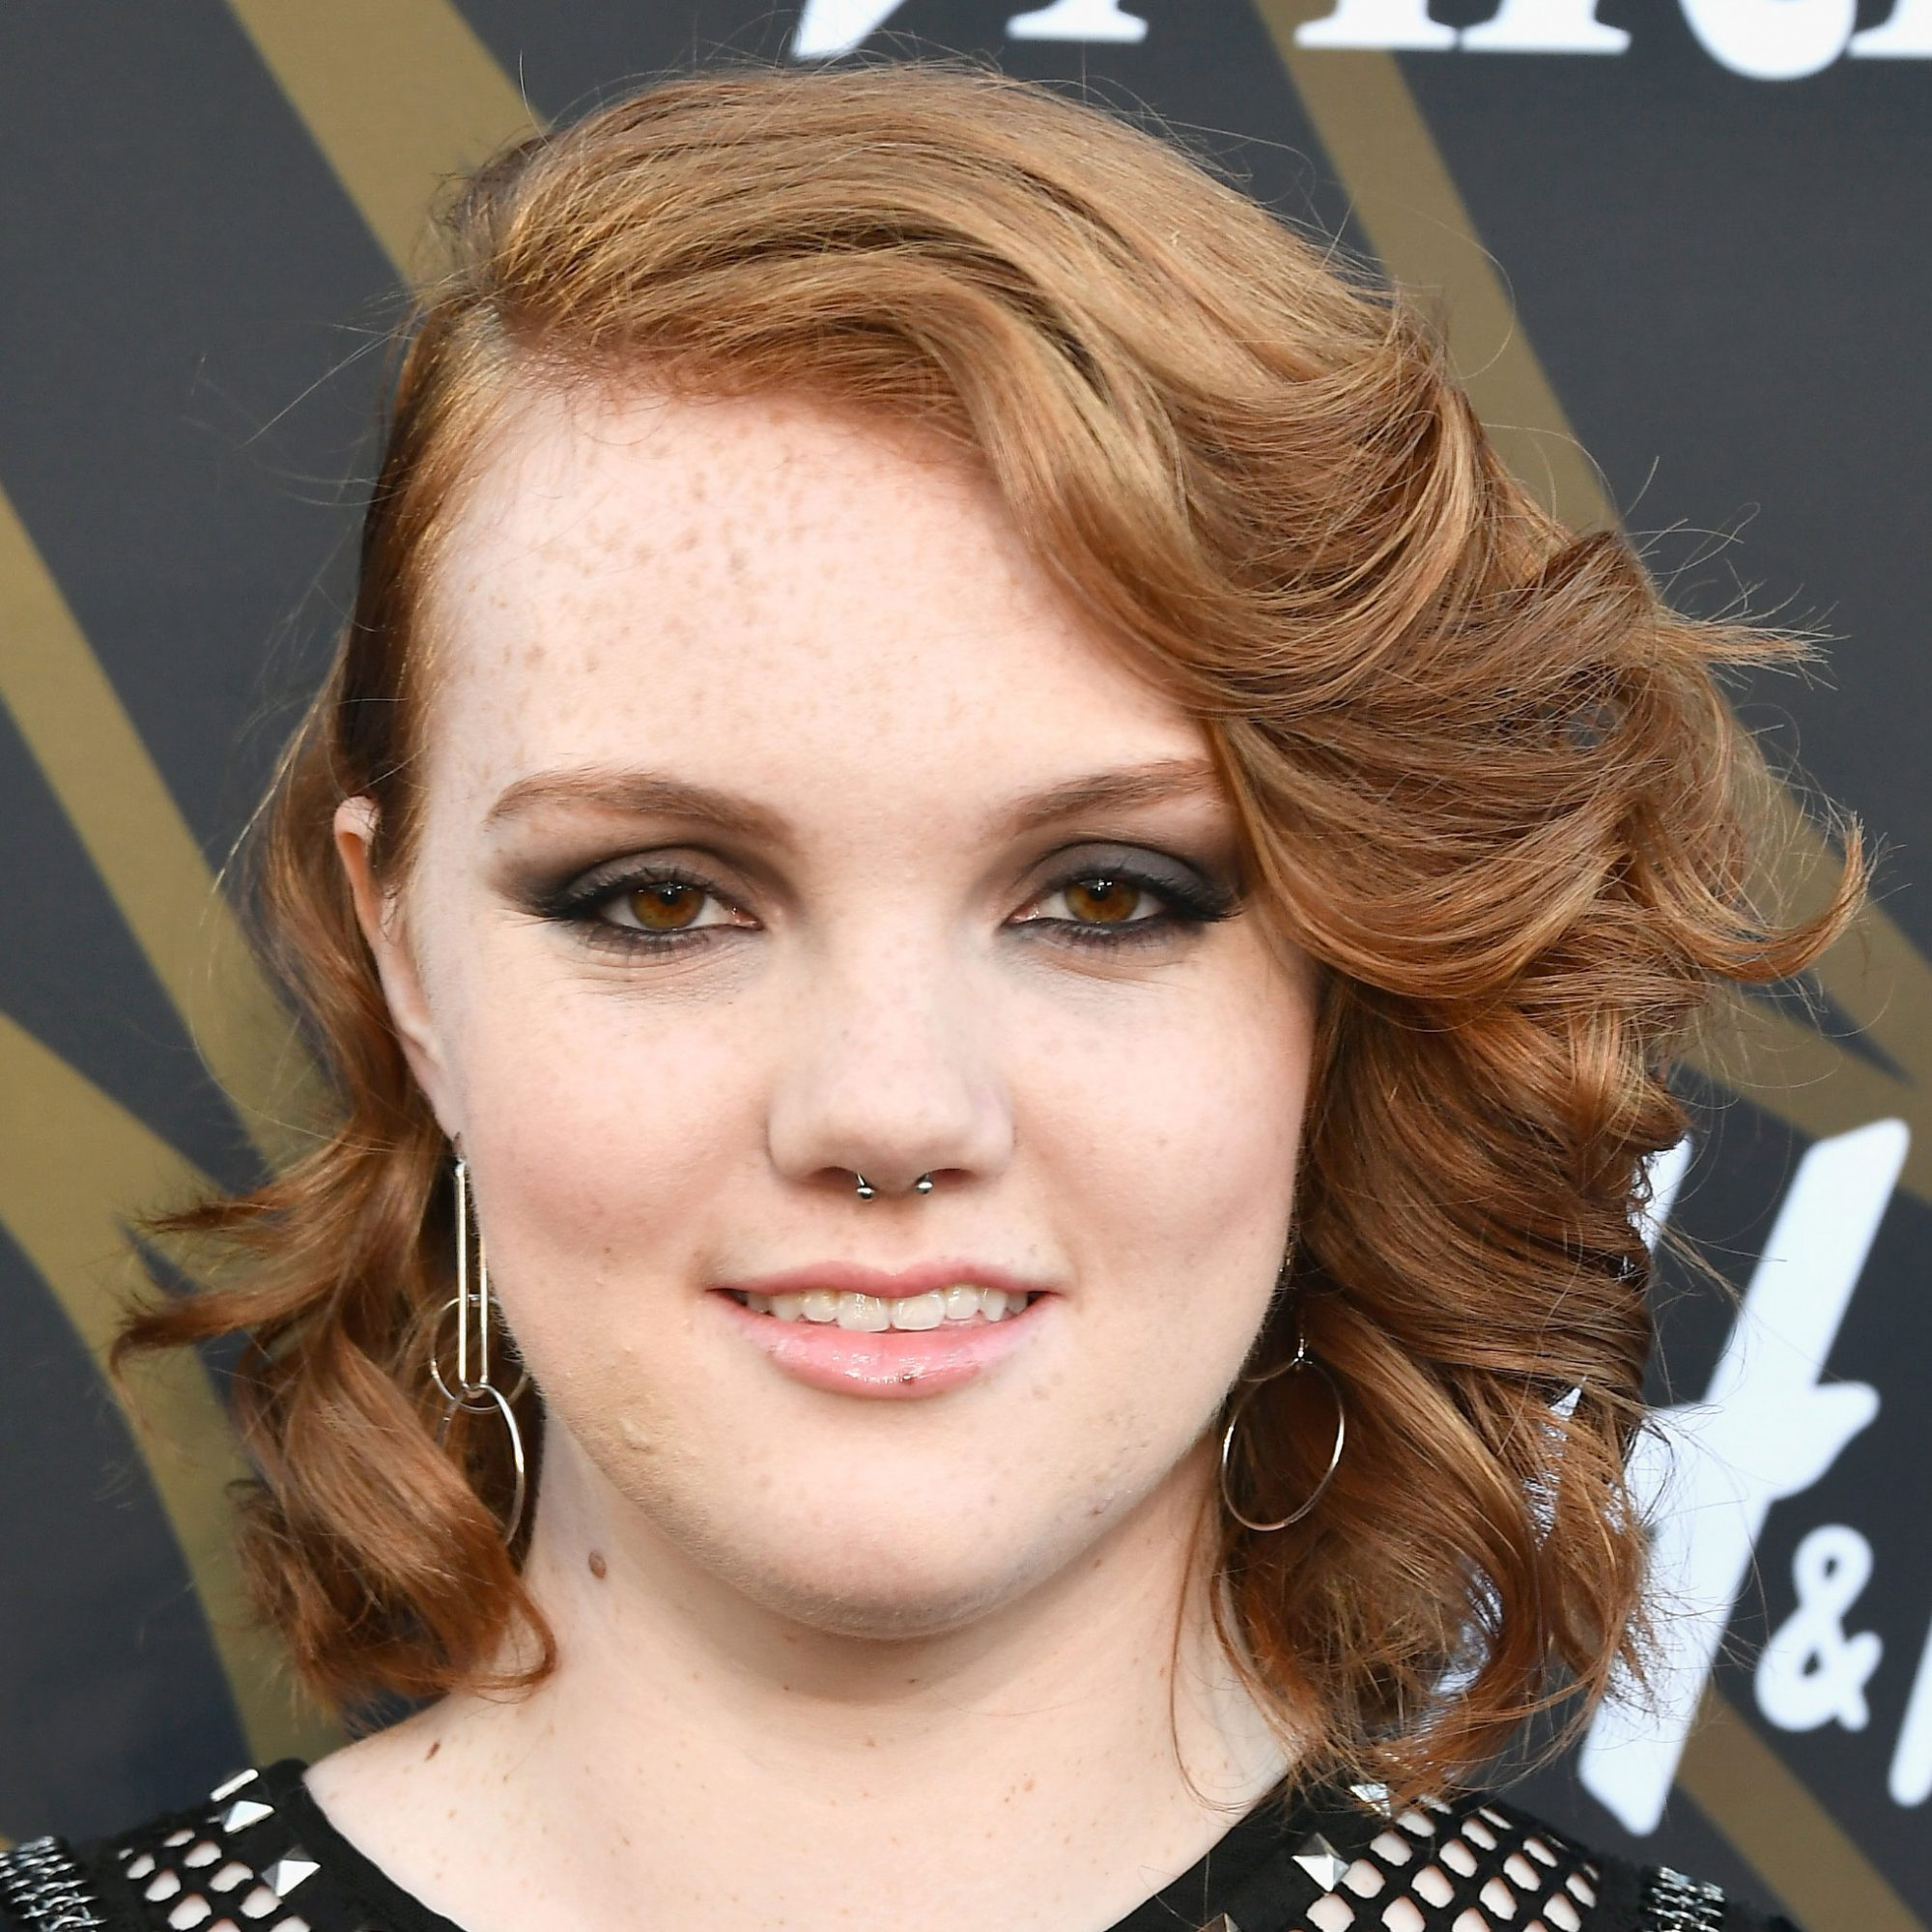 Medium Length Hairstyle: Deep Side Part and Vintage Curls, Shannon Purser